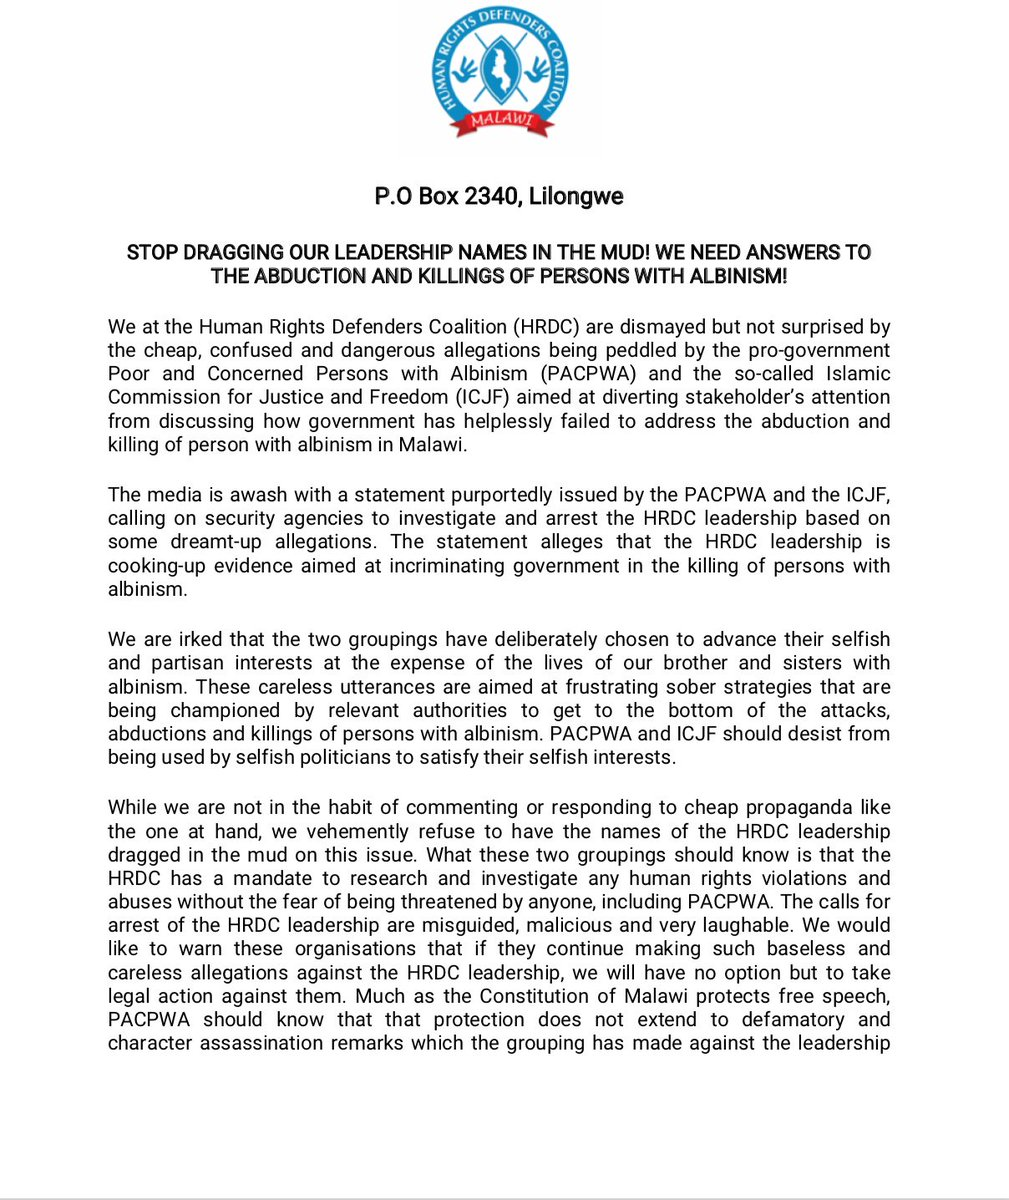 The SAHRDN is disturbed at seemingly carefully orchestrated attacks against Human Rights Defenders Coalition  HRDC leaders by pro-government GONGOS the PACPWA and ICJF. This seems to mark the beginning of a sustained attack on HRDS ahead of elections in #Malawi #ProtectCivicSpace